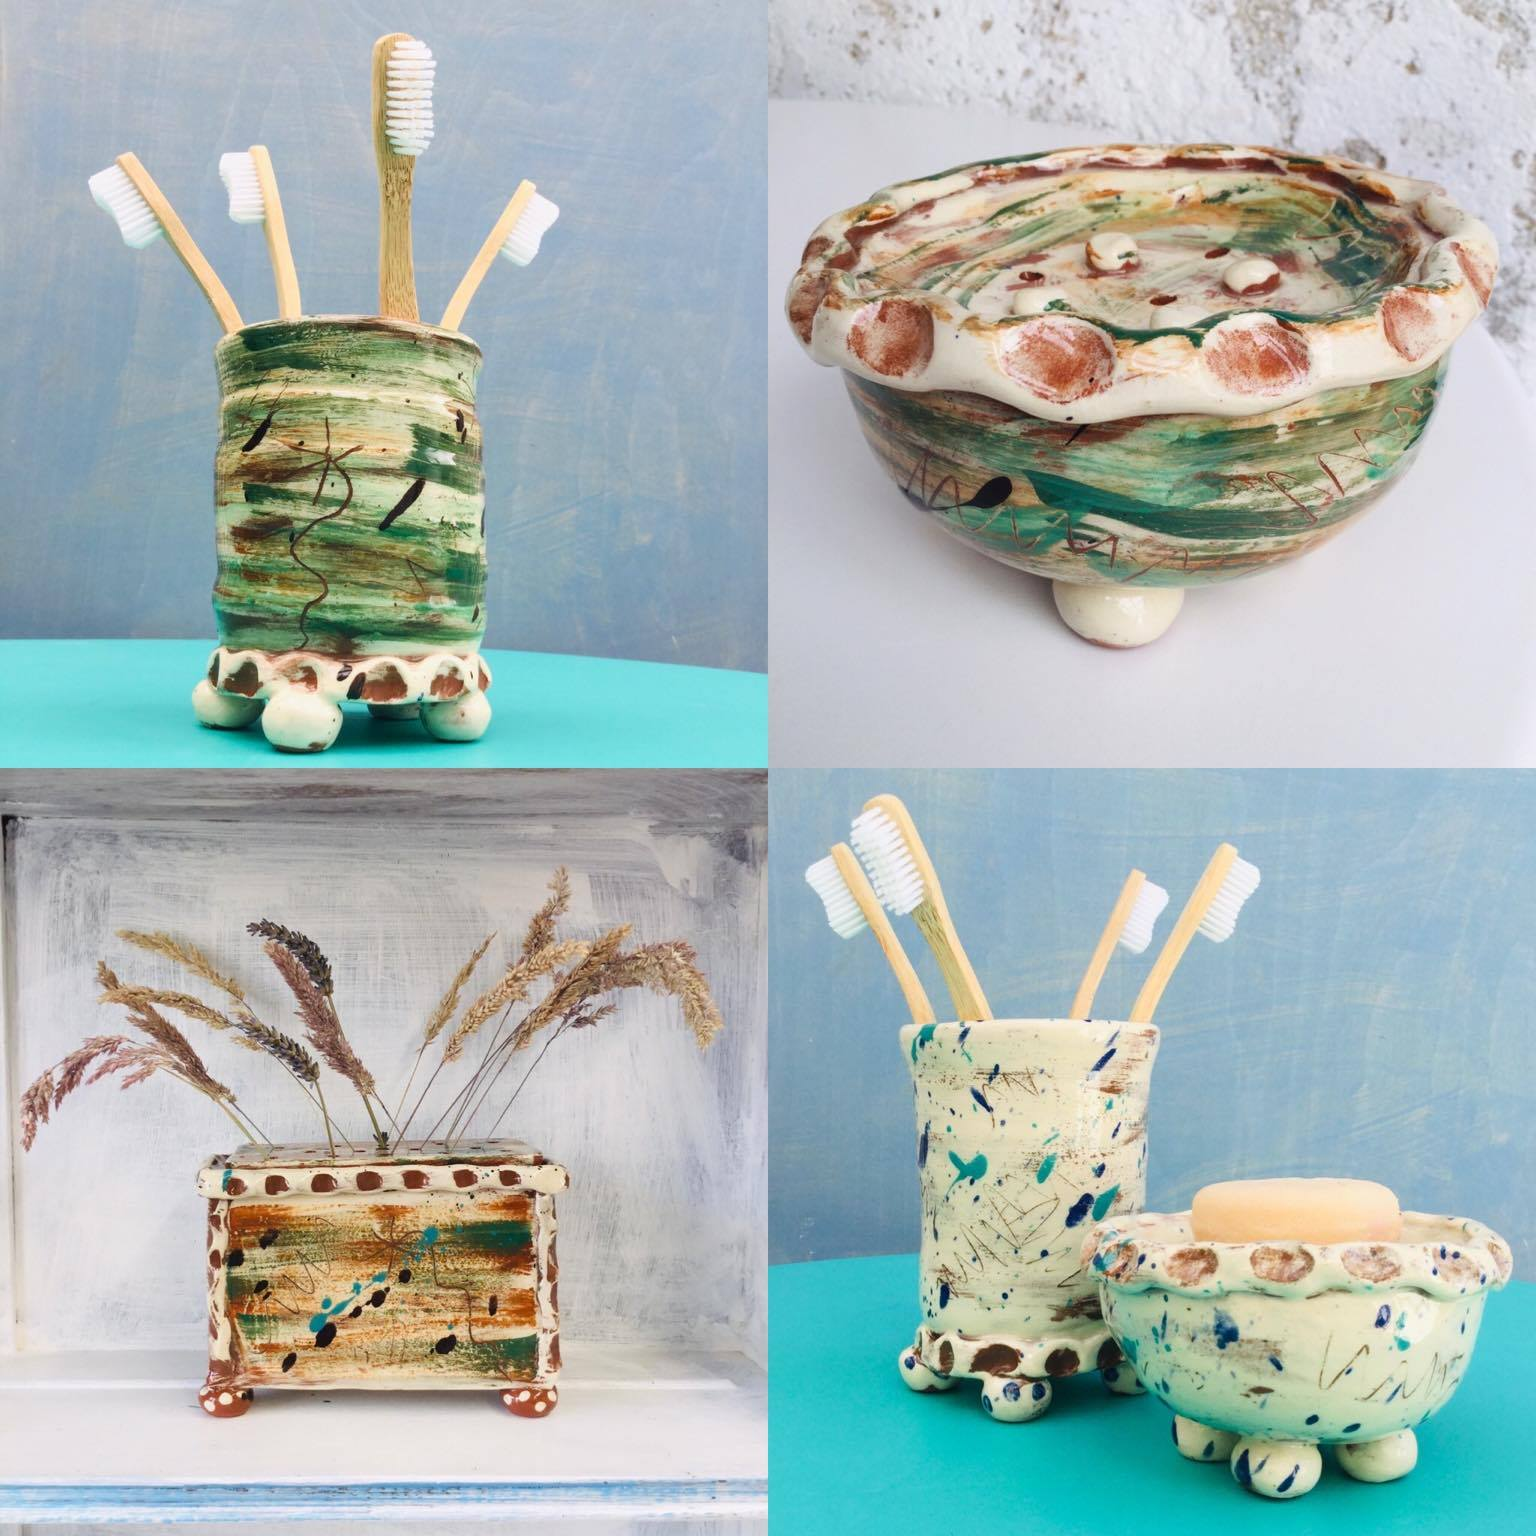 a selection of ceramic bathroom ware by sarah monk ceramics